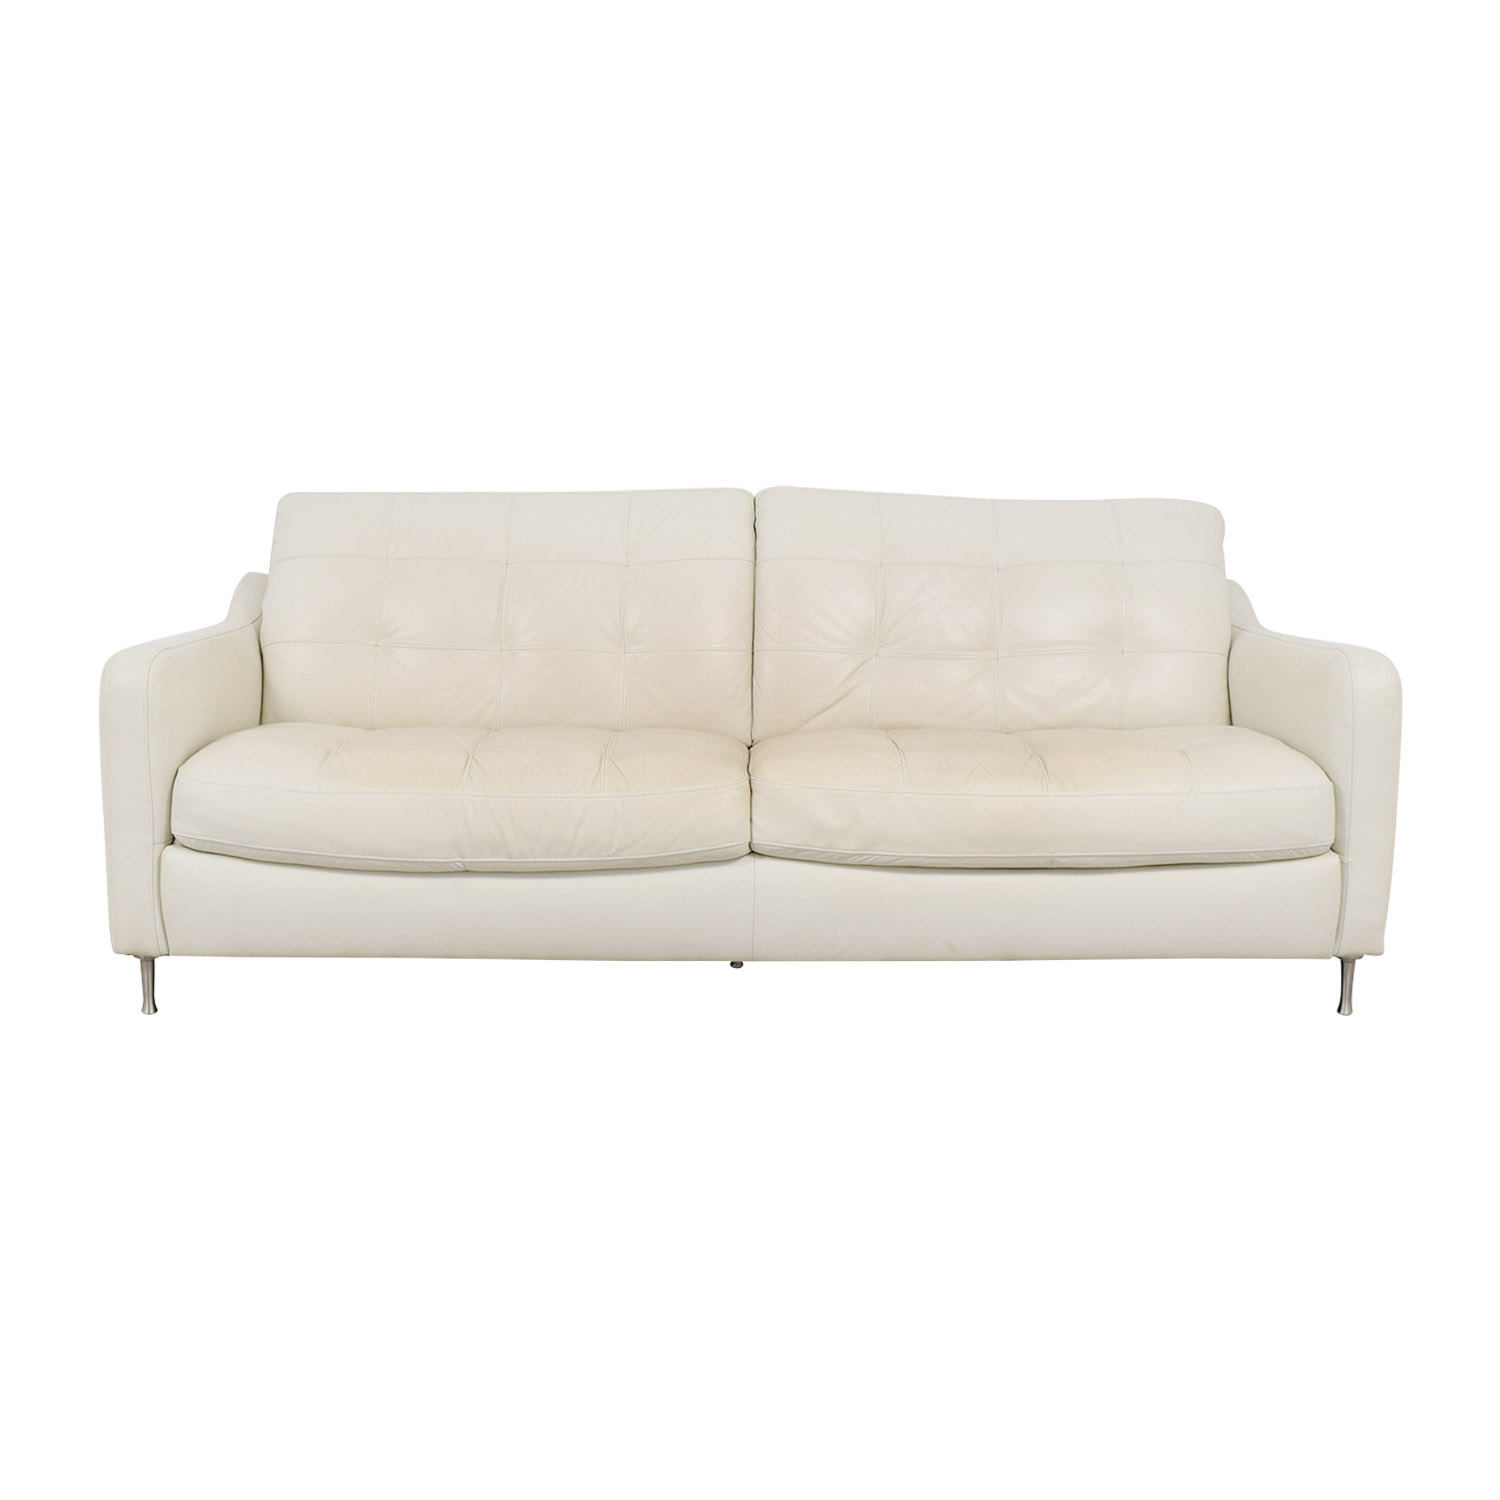 90 Off Natuzzi Natuzzi White Tufted Leather Sofa Sofas